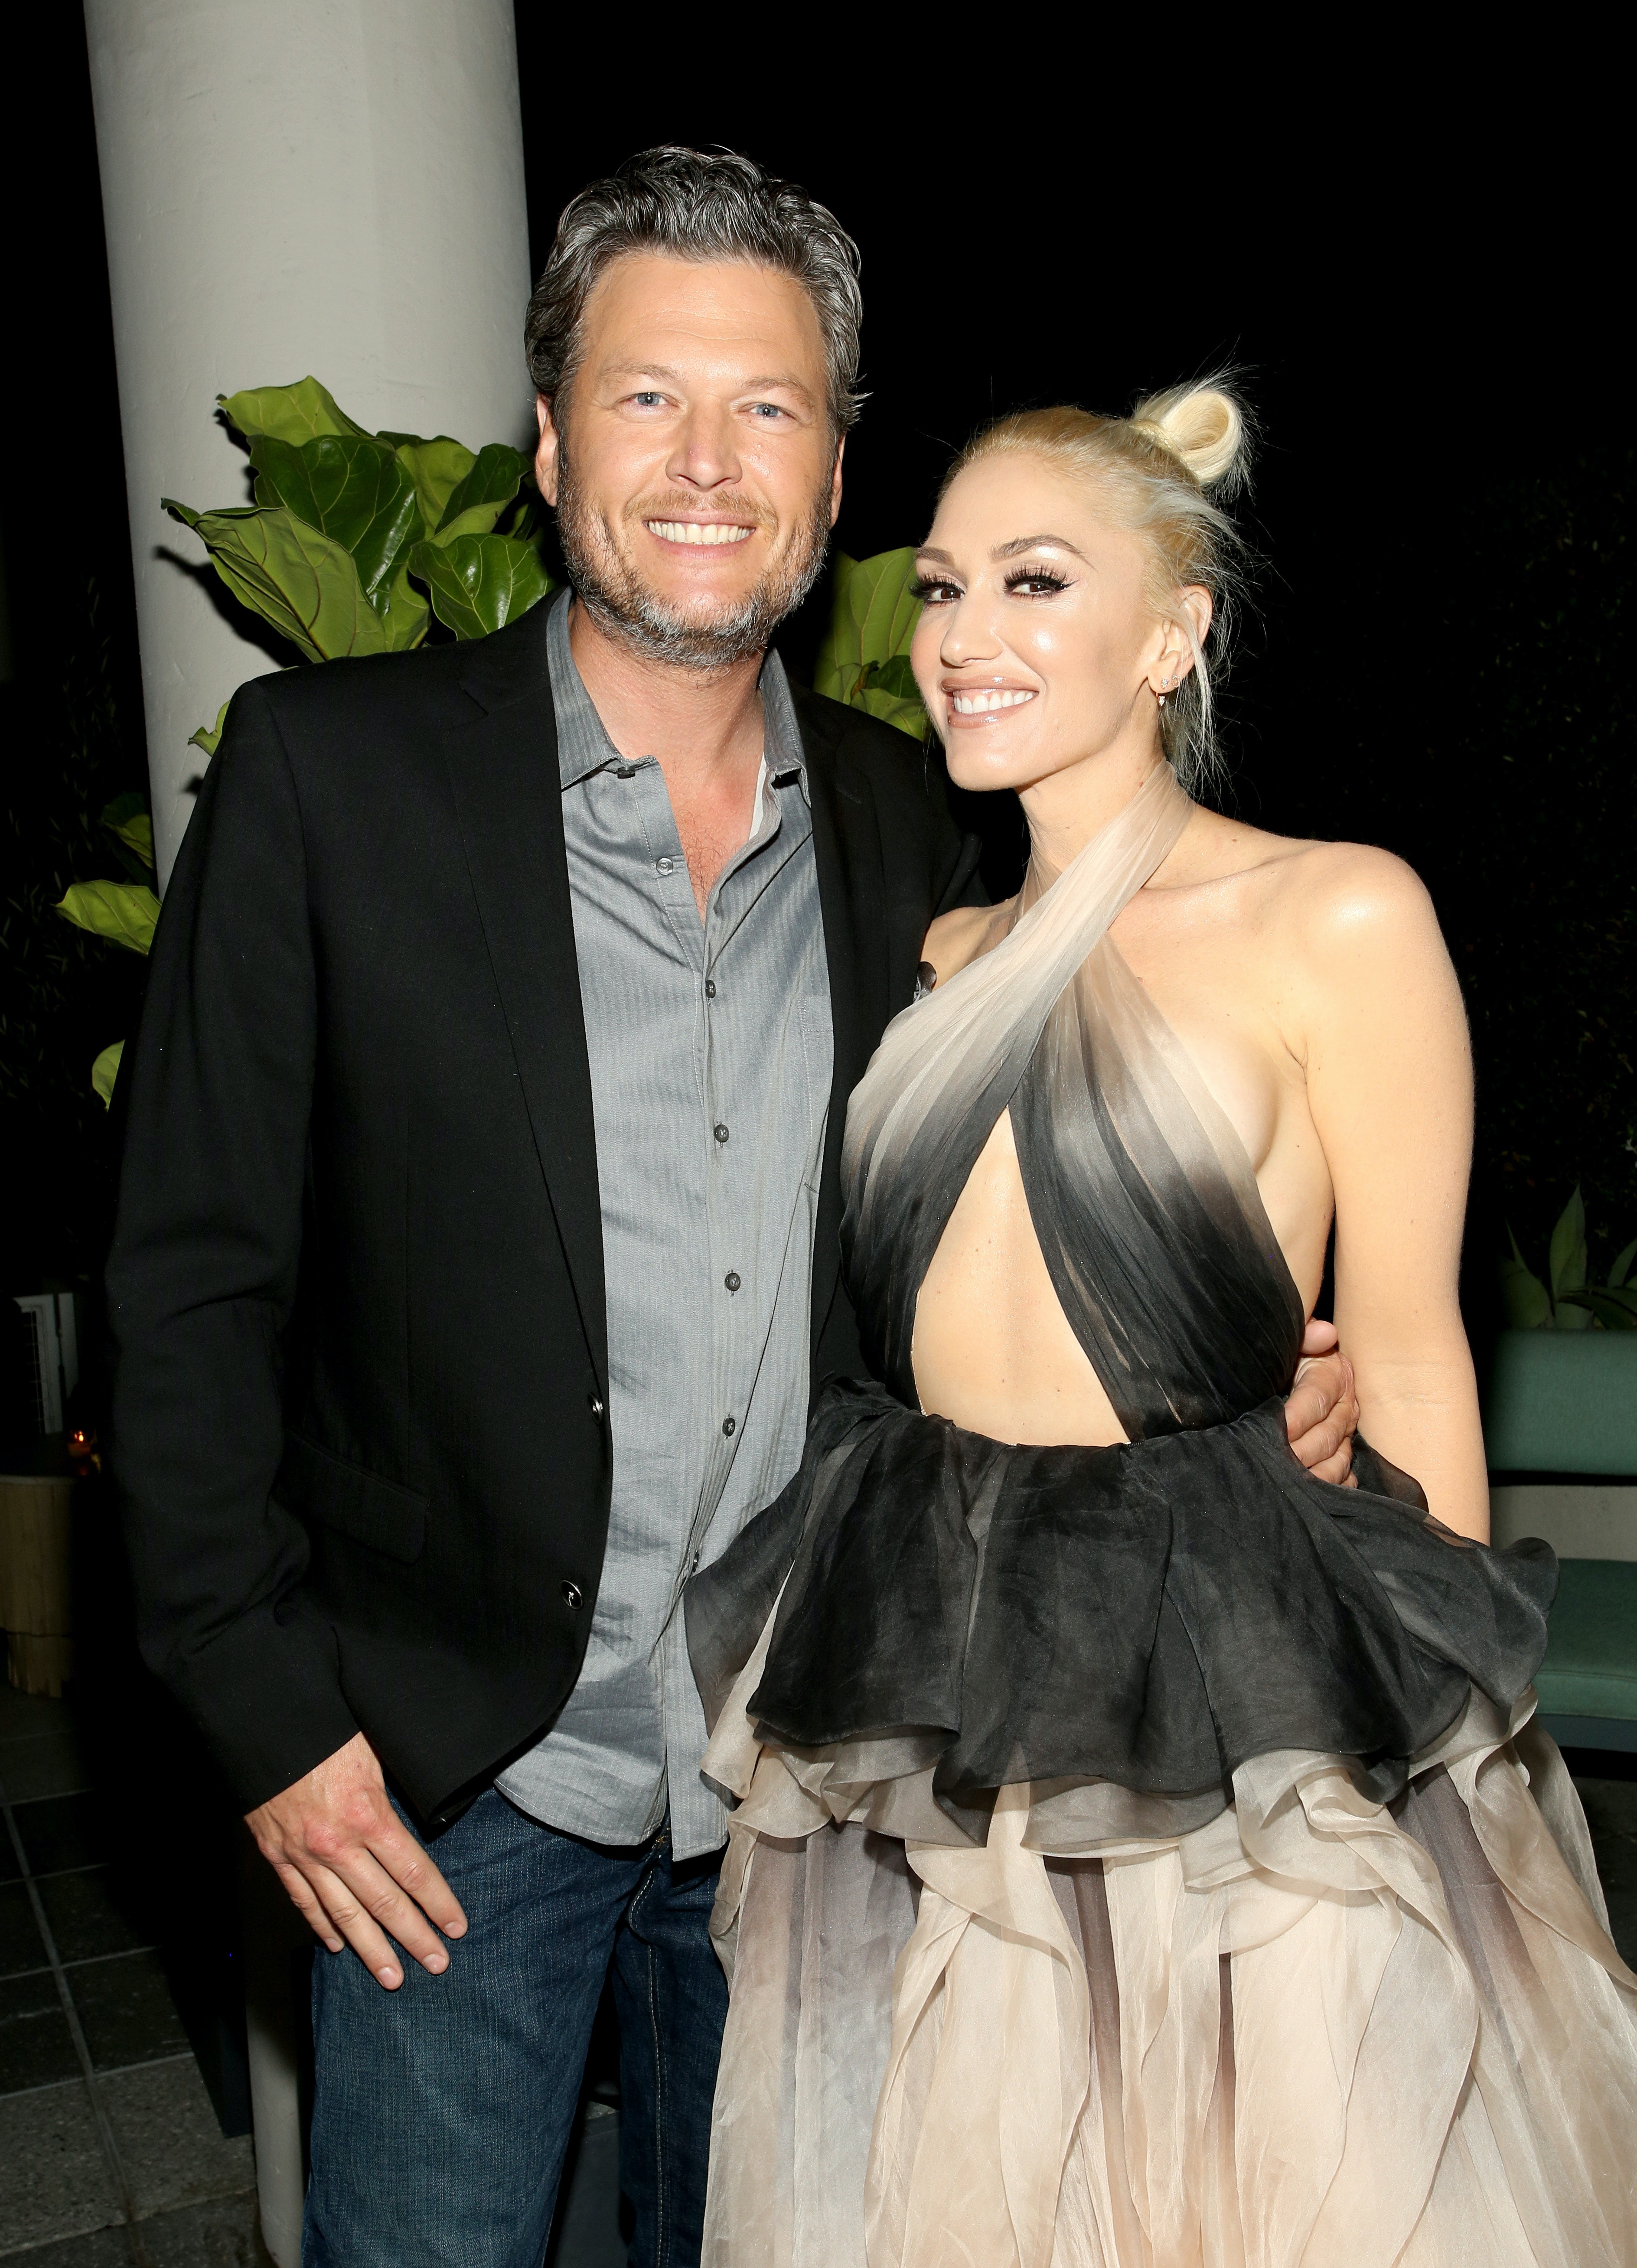 Gwen stefani not dating blake shelton